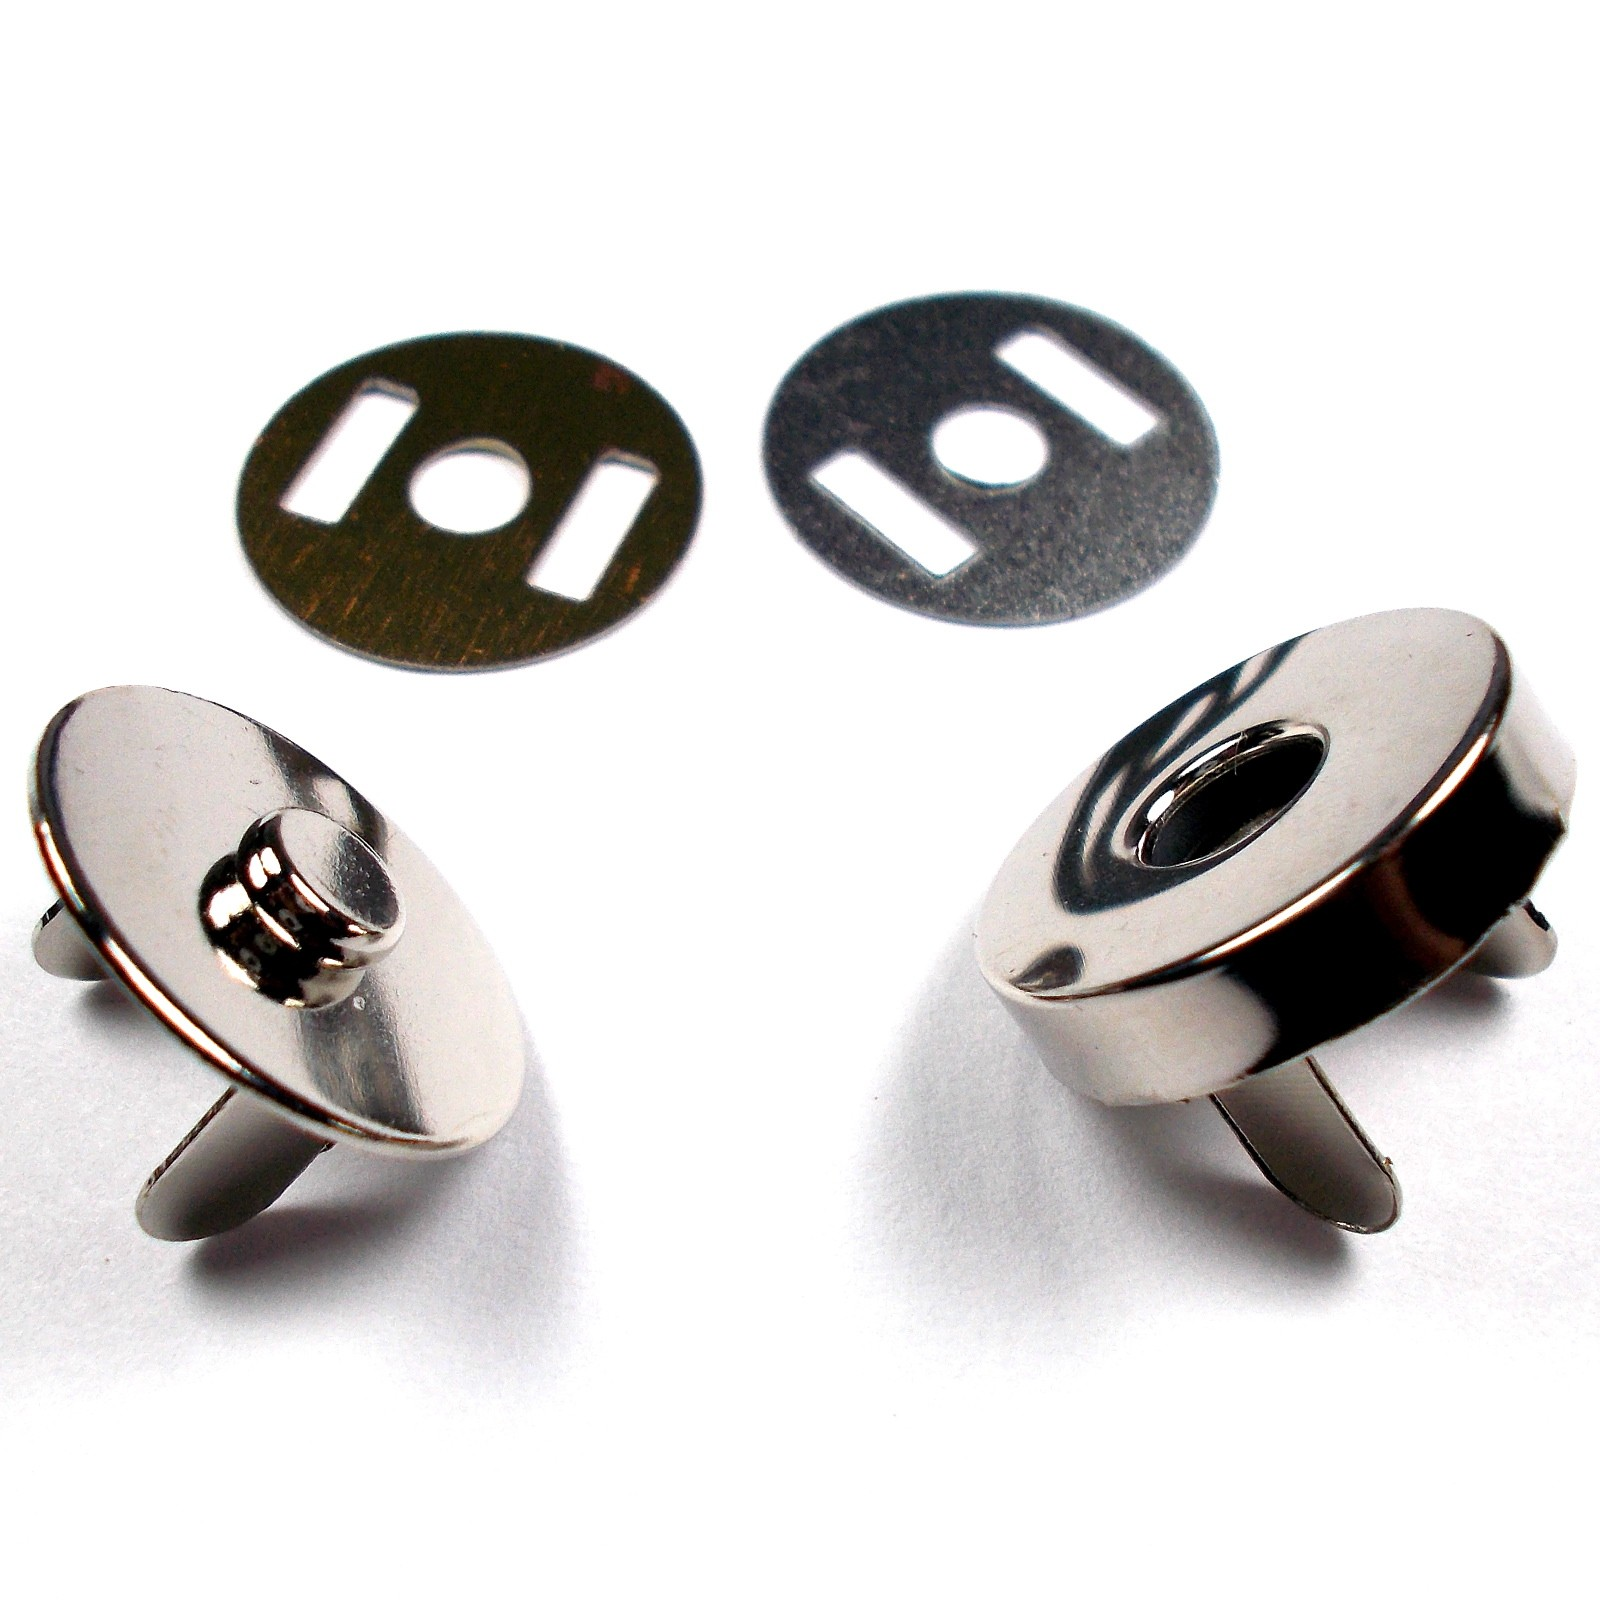 Metal Magnetic Clasps Bag Fasteners 14mm Silver Pack of 2